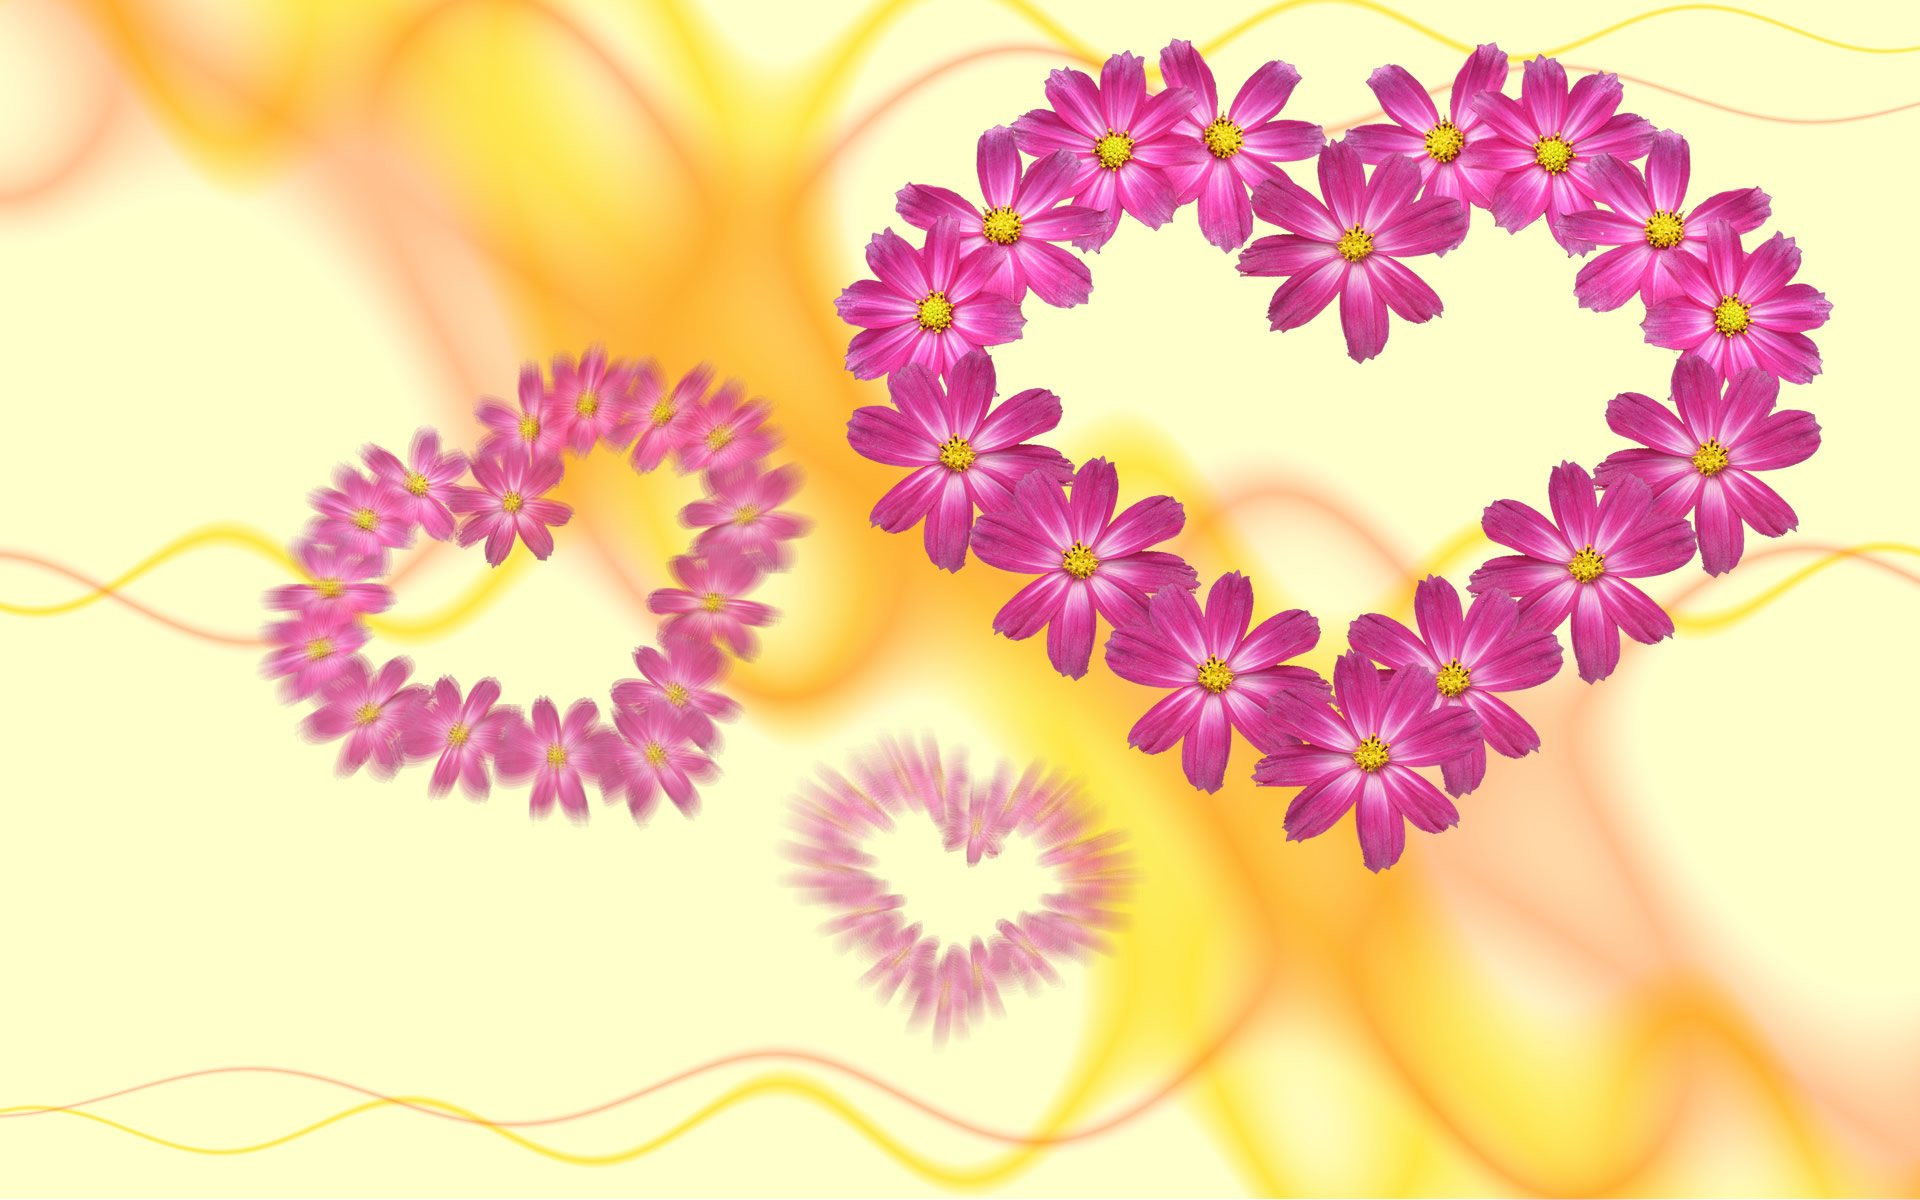 Love Flower Wallpaper For Desktop : Wallpaper Flowers Love - WallpaperSafari